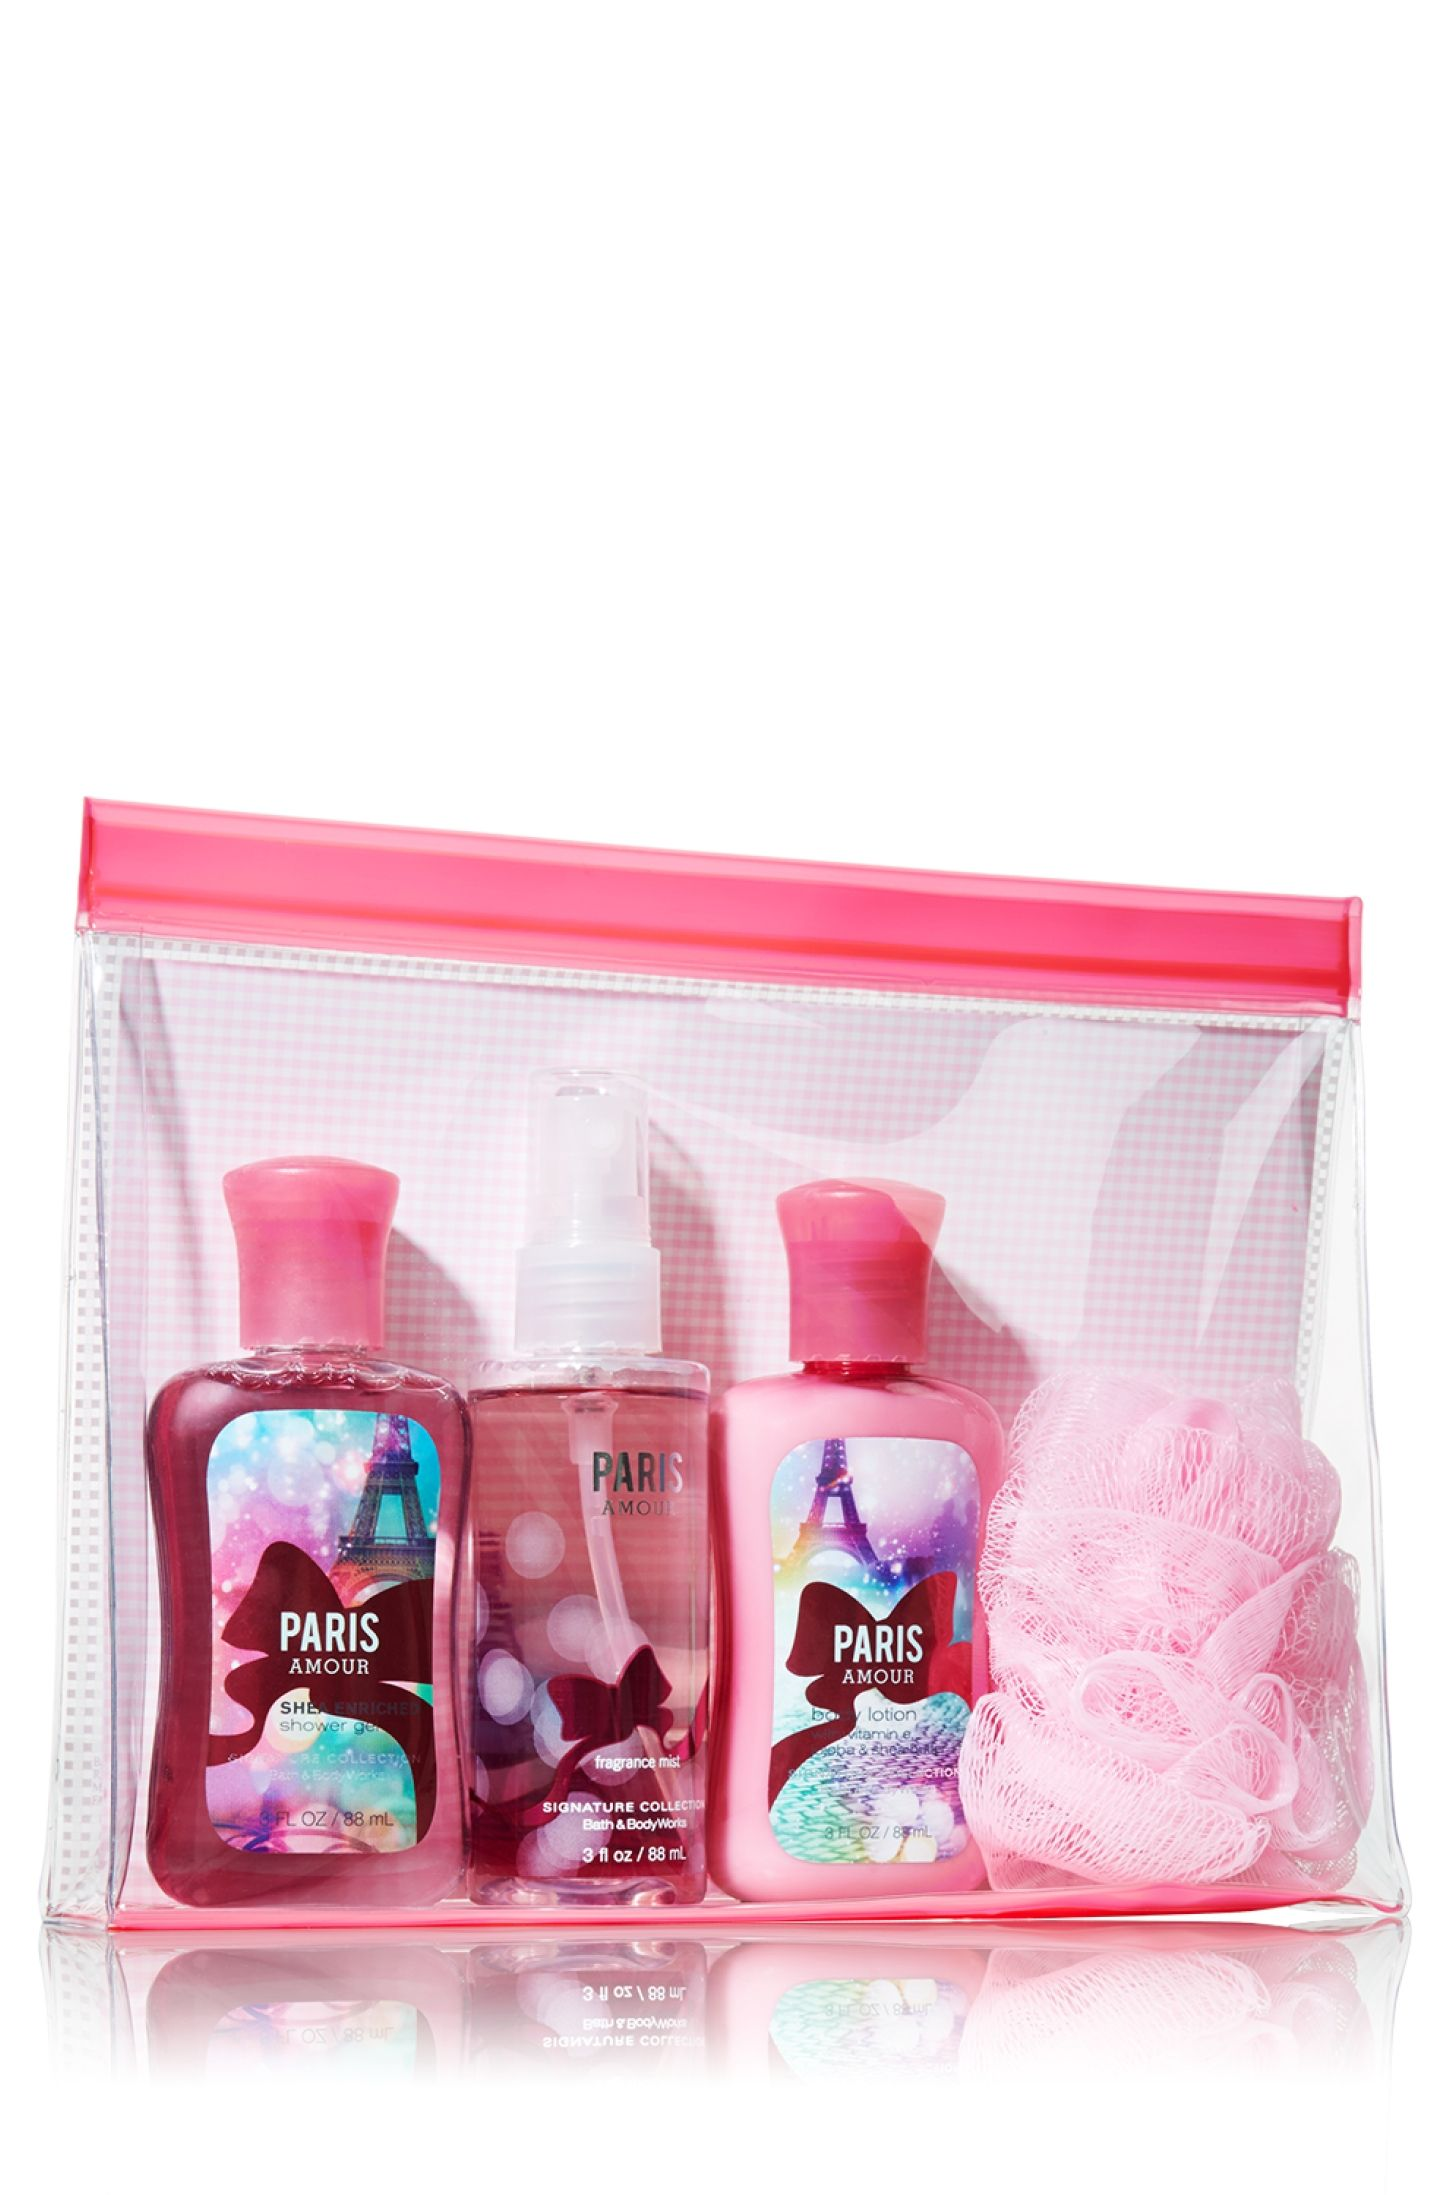 Paris Amour Minis To Go Gift Set Signature Collection Bath